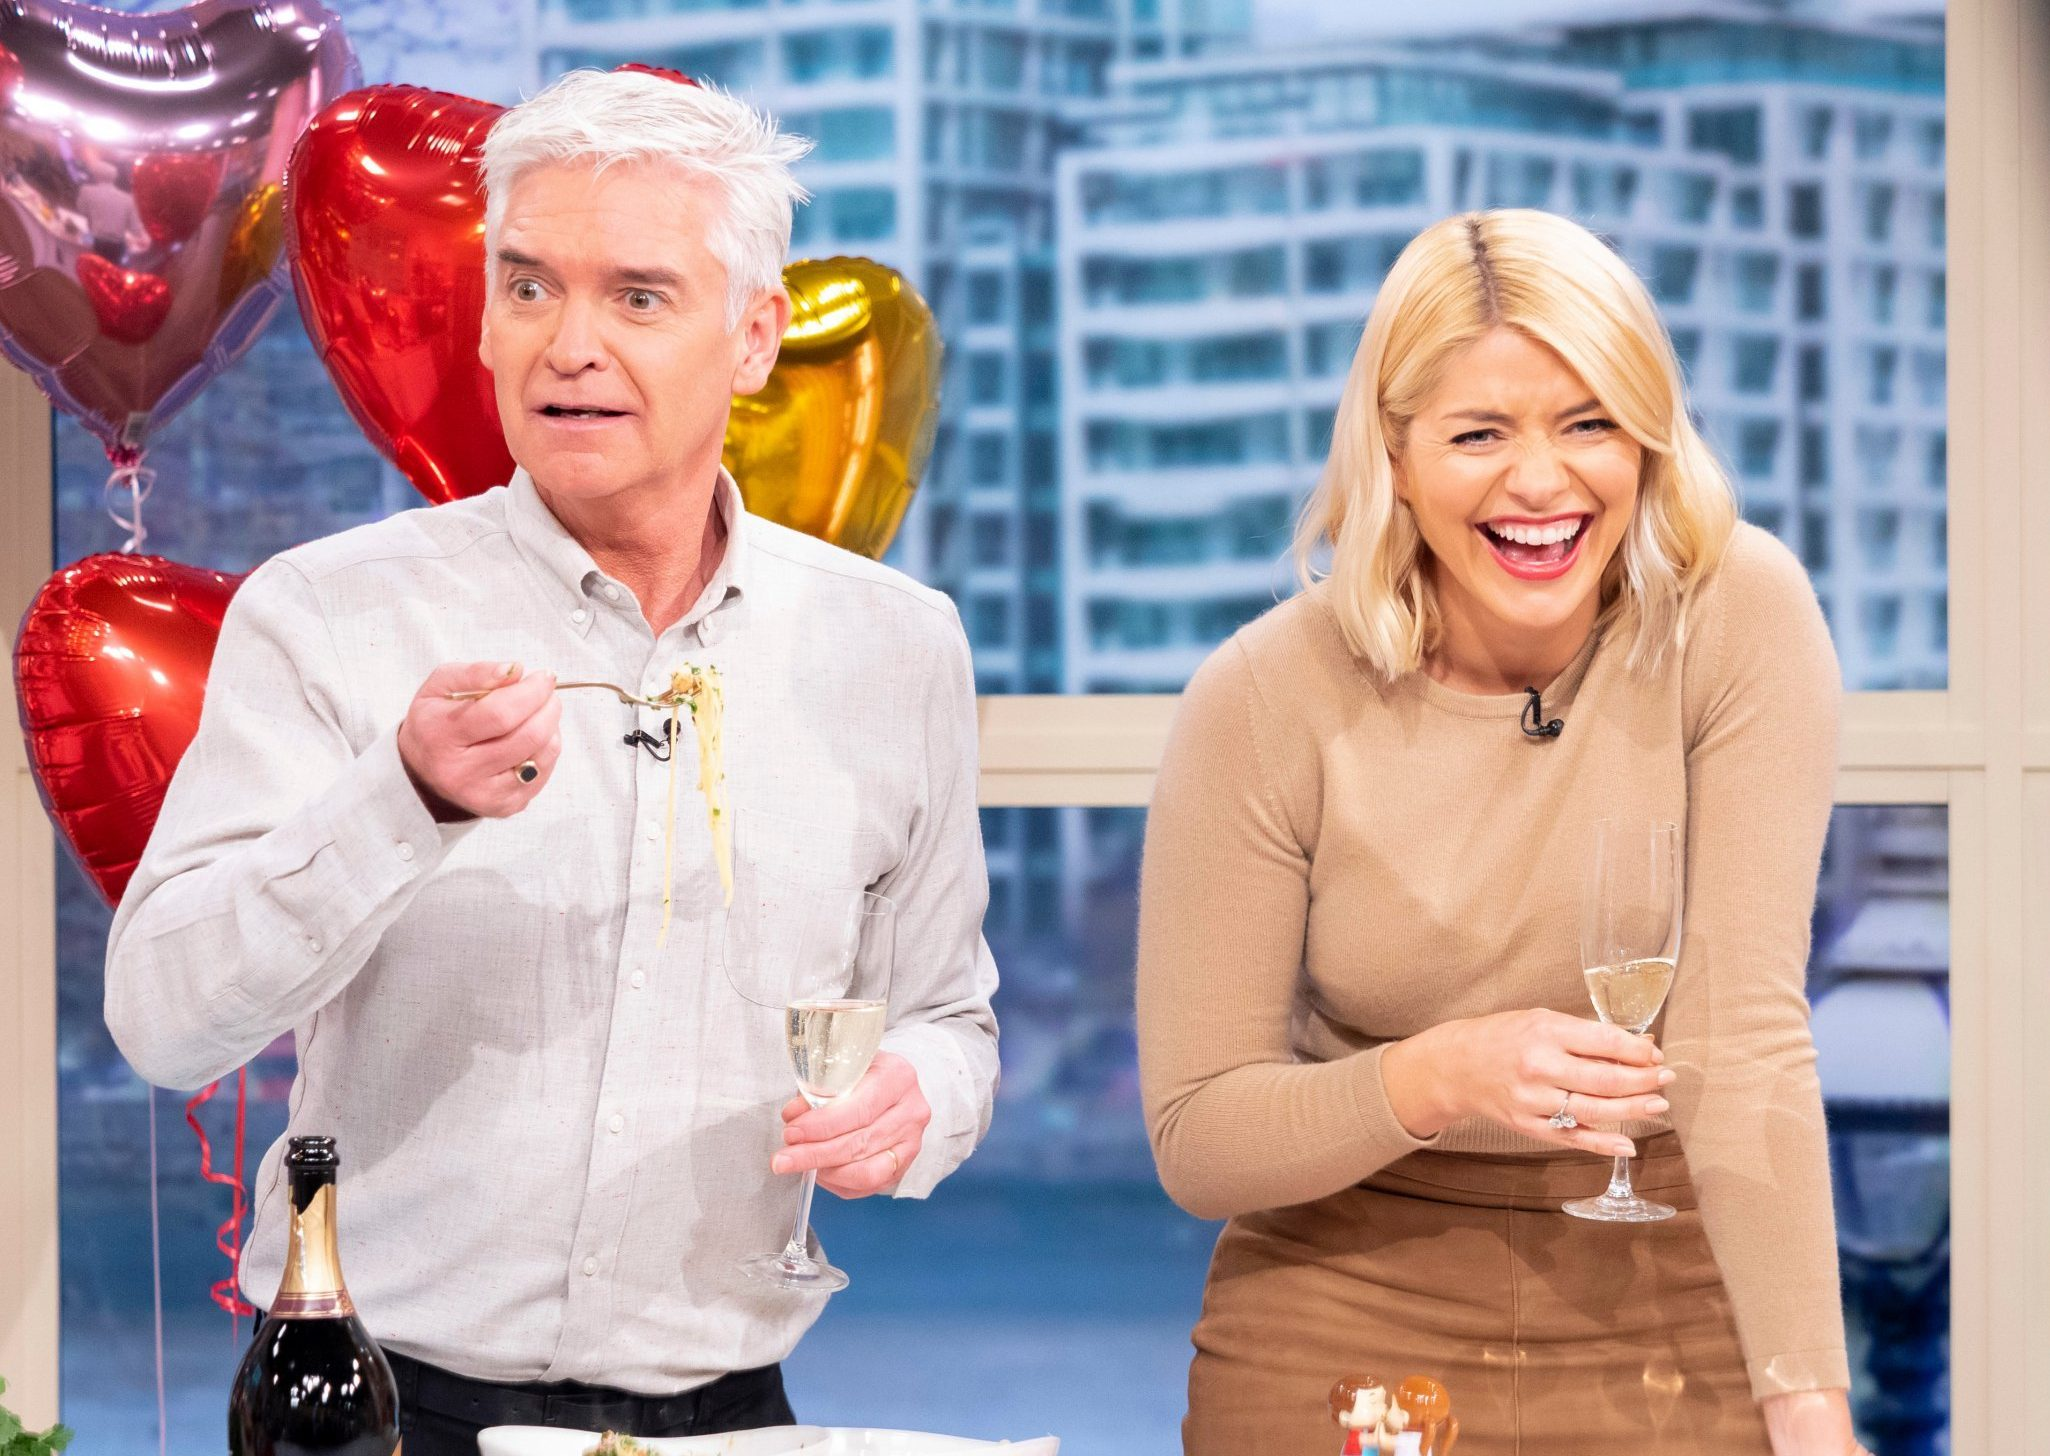 Editorial use only Mandatory Credit: Photo by Ken McKay/ITV/REX (10101385cm) Phillip Schofield and Holly Willoughby 'This Morning' TV show, London, UK - 11 Feb 2019 Holly Willoughby and Phillip Schofield were left in fits of giggles today as they tried their hand at cooking for the first time, when Gino was too unwell to make it to the This Morning studio. Gino had been due in to cook a Valentine?s day special of ?Linguine crab with Prosecco and cherry tomatoes?. Phillip quipped: ?It?s the first time ever Holly and I are cooking on the air by ourselves. We have Julia our home economist upstairs in the gallery and show?s going to jump in if we do anything wrong. And also because we can?t be trusted we have a medic on a standby. Rhonda is there in case were burn ourselves.? Holly and Phillip struggled to stifle their laughter as Gino barked instructions down the line. Gino shouted: ?Stir the pasta! The garlic and chilli is burning! I?m not working, I have a stomach bug.?